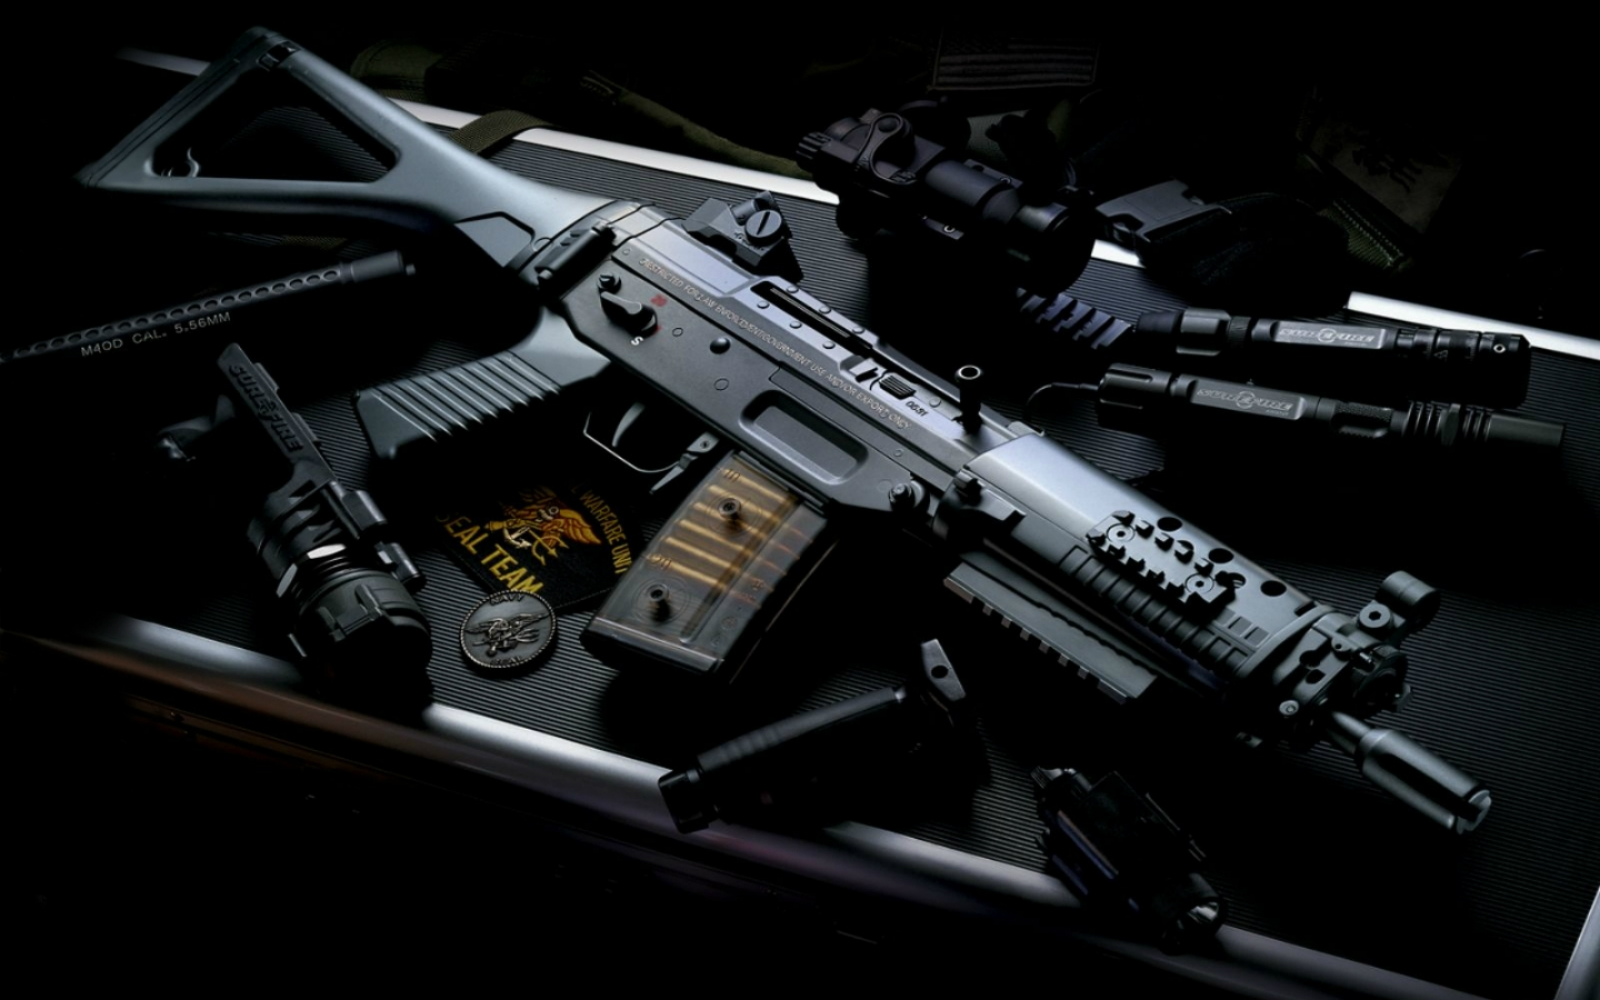 hd guns wallpaper download - photo #8